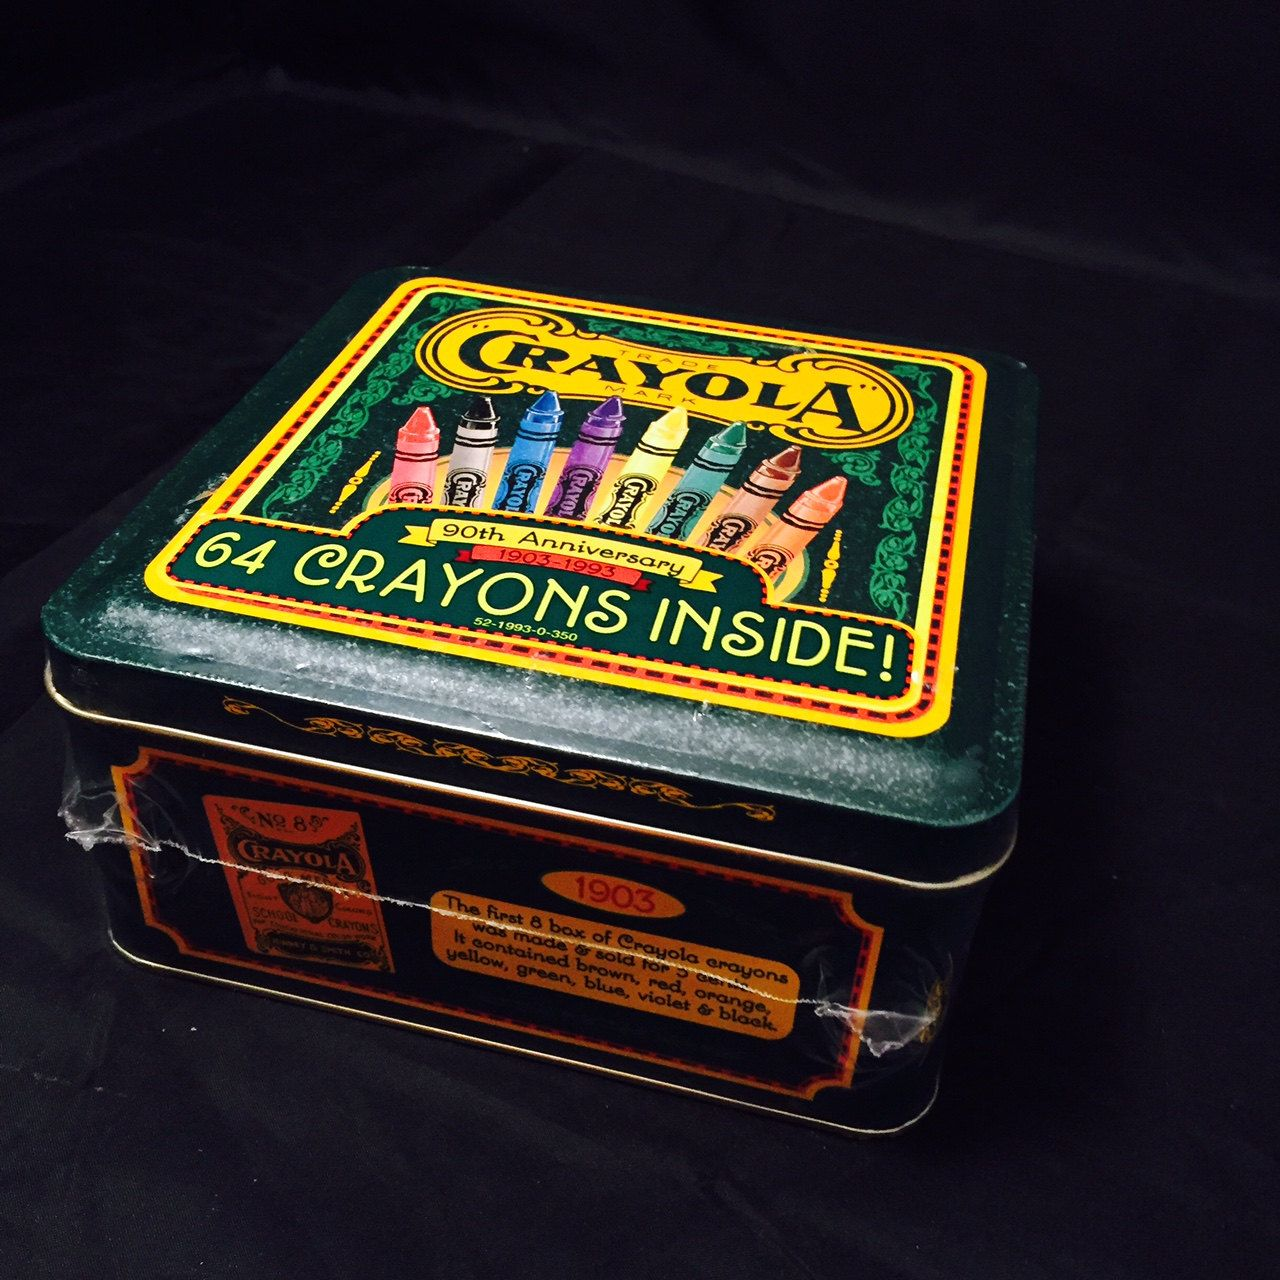 Crayola 90th anniversary 1993 64 count Crayons tin collectible Unopened Crayons by missenpieces on Etsy